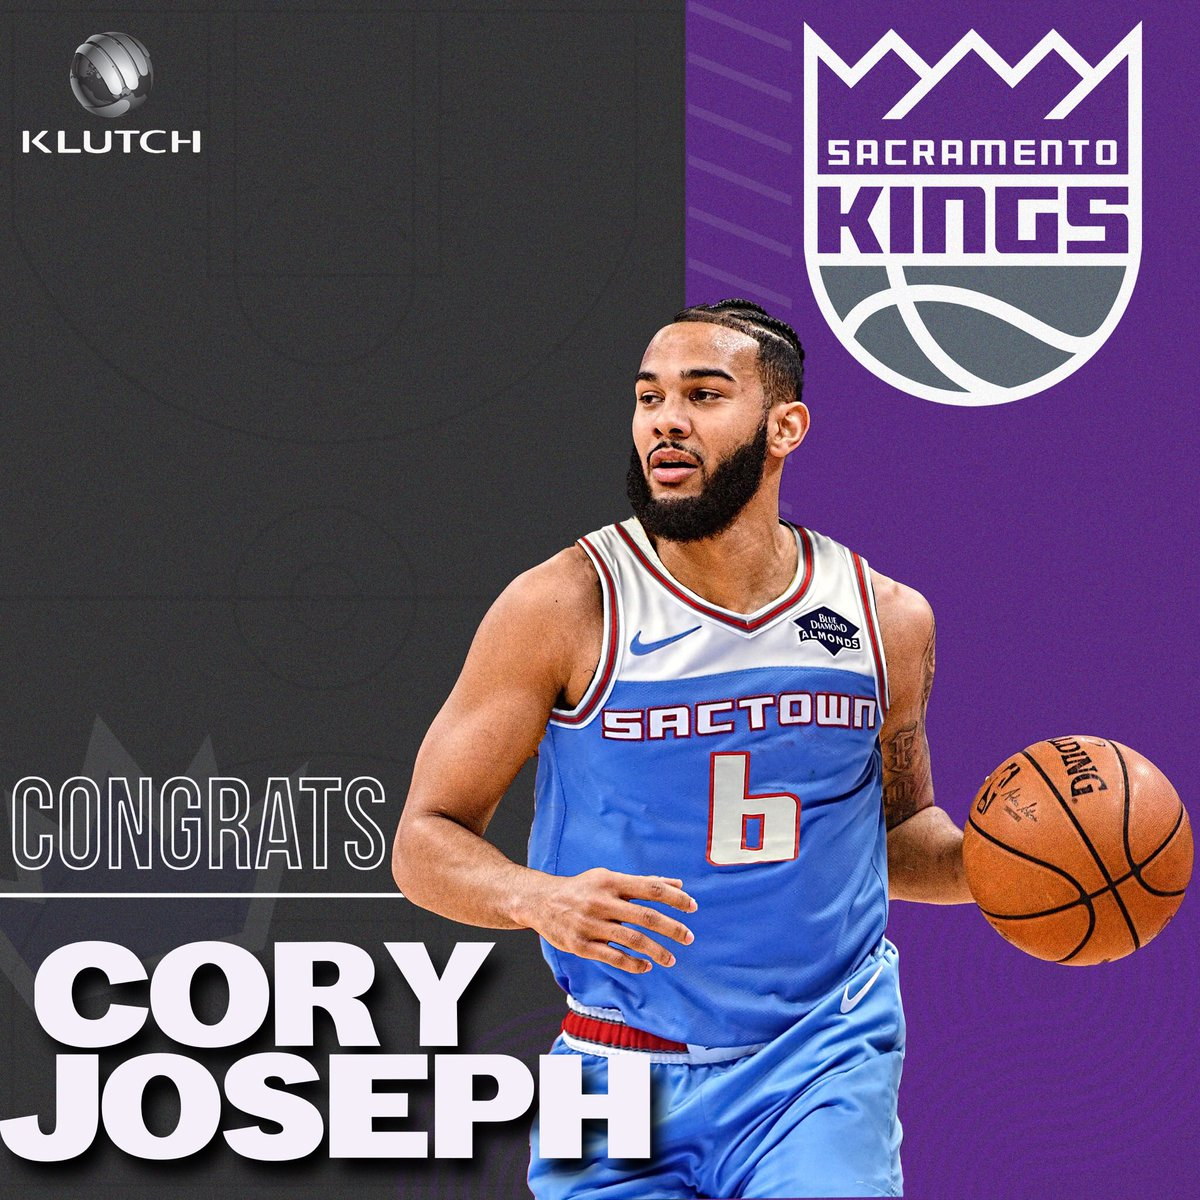 Hey Sactown, can't wait to get out there, meet the @SacramentoKings fans and get to work 💪🏽  #CJ6